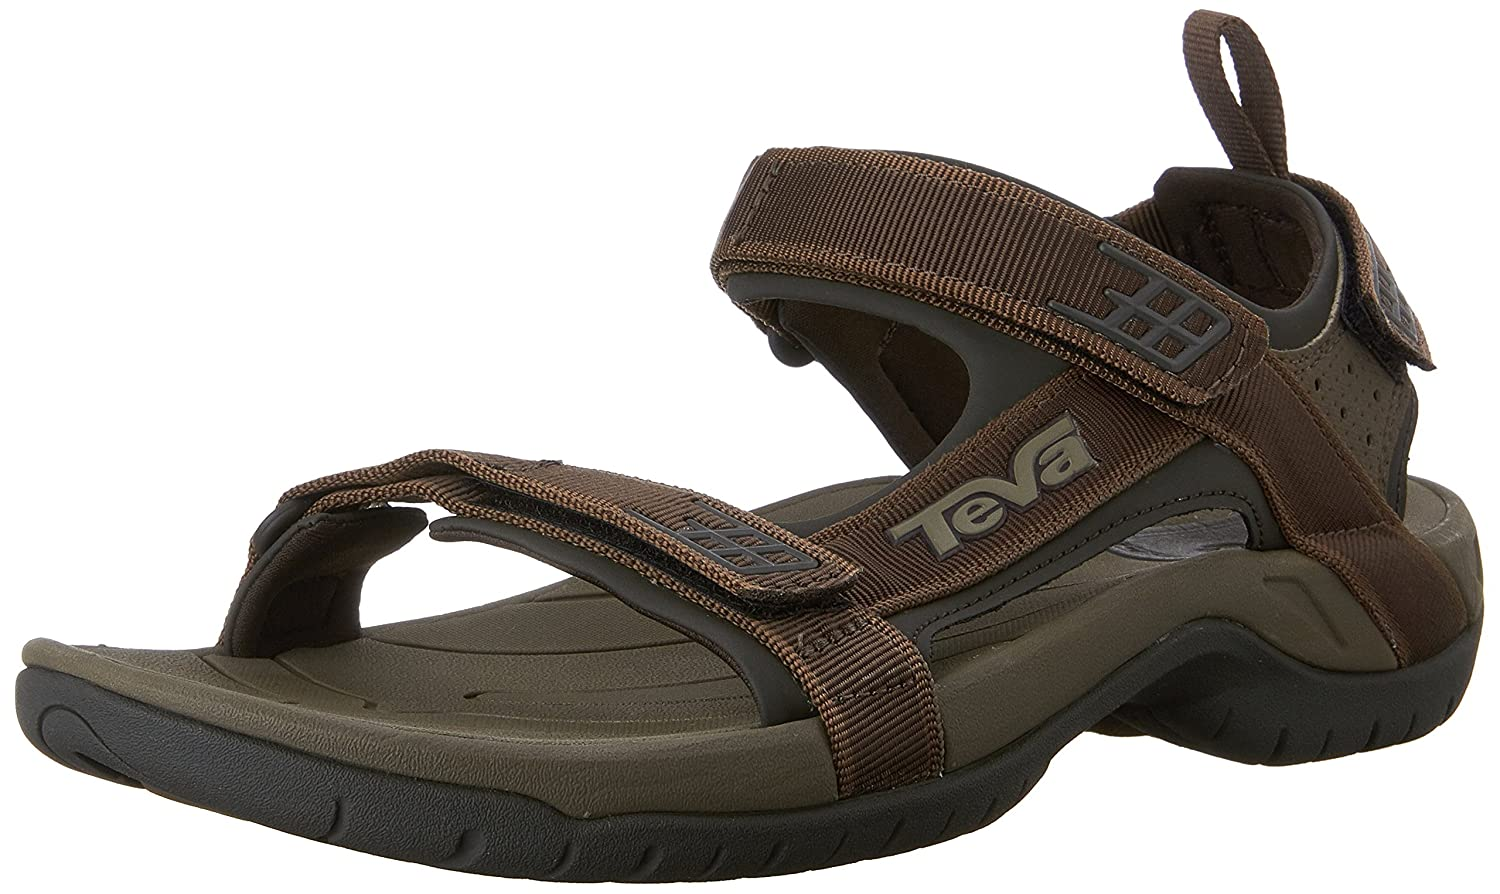 Teva Men's Tanza Sandal B0738F8KPQ 44-45 M EU / 11 D(M) US|Brown